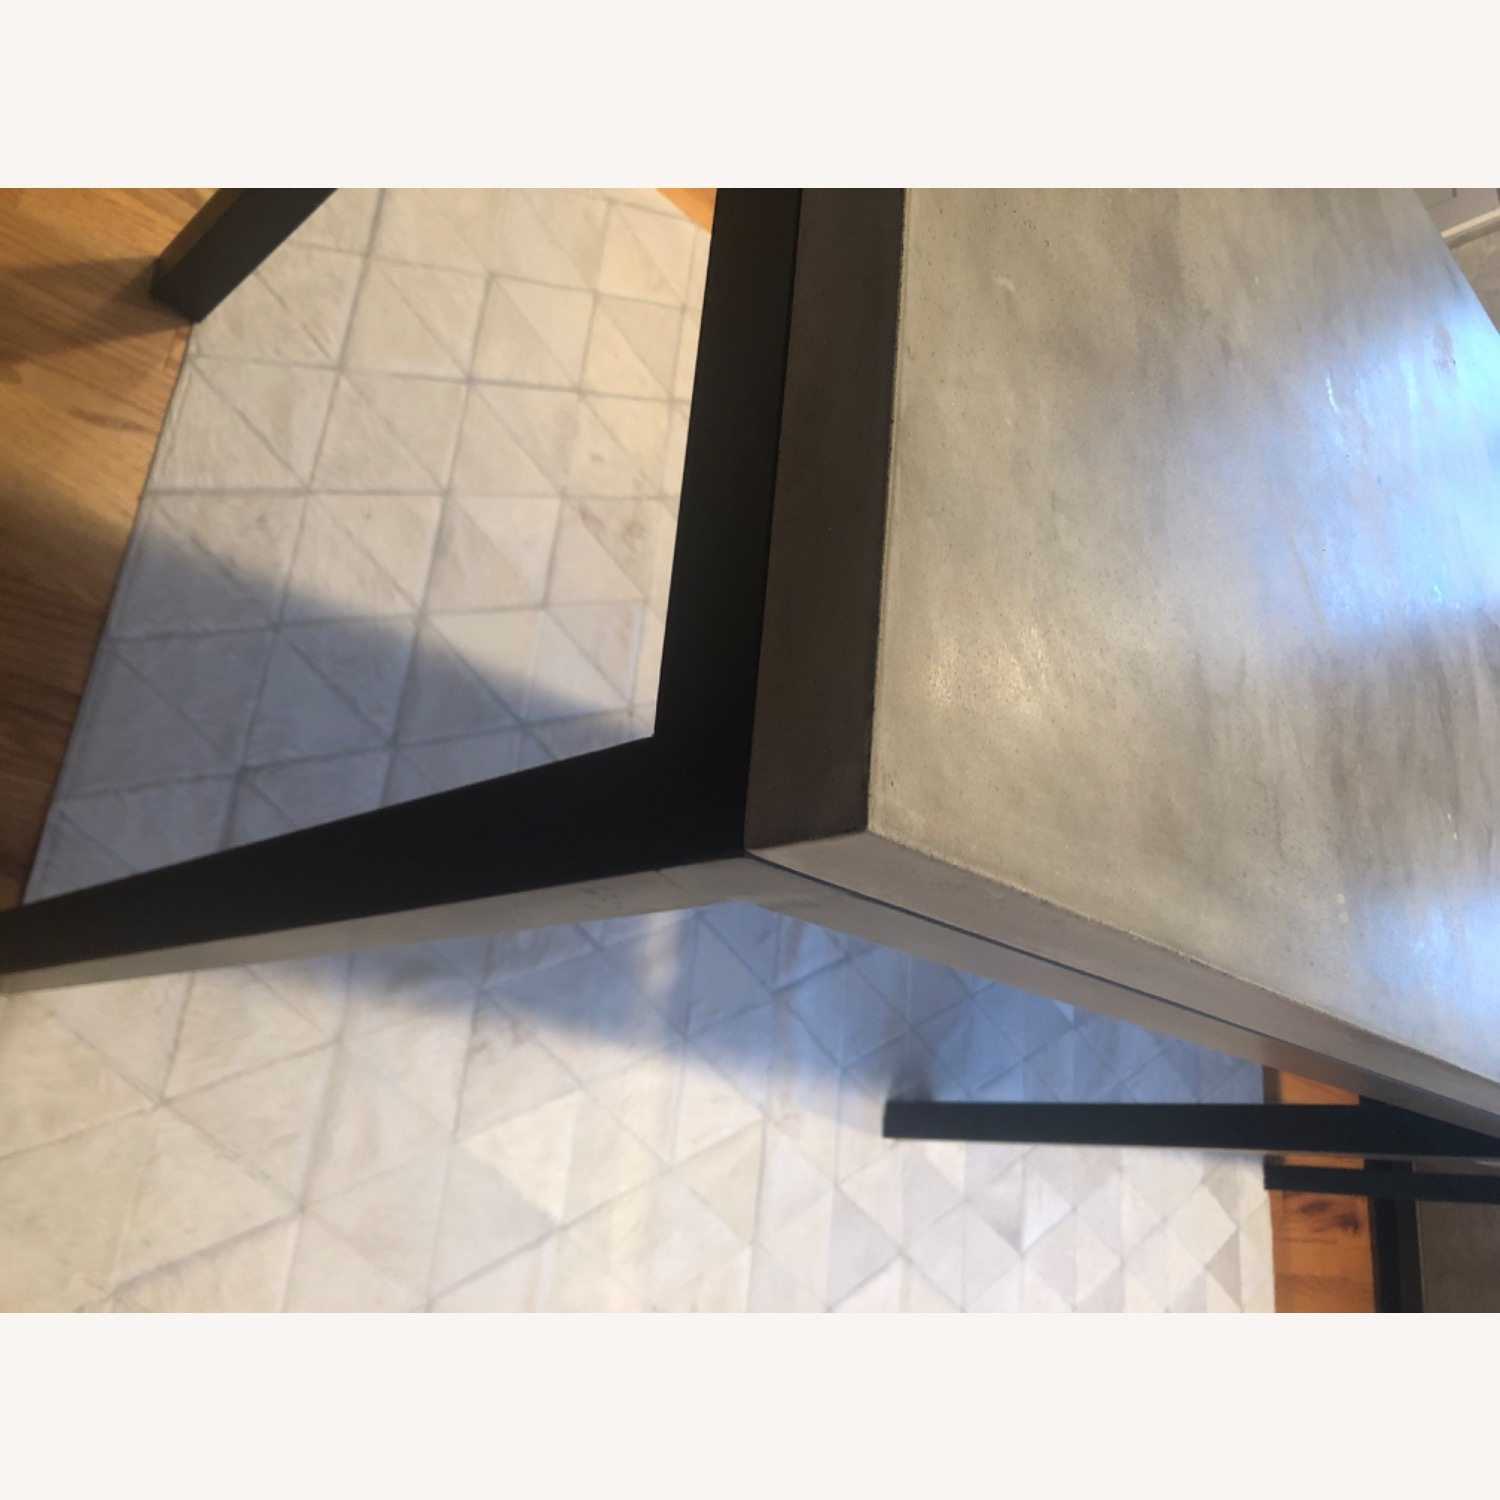 Crate & Barrel Concrete High Dining Table - image-15